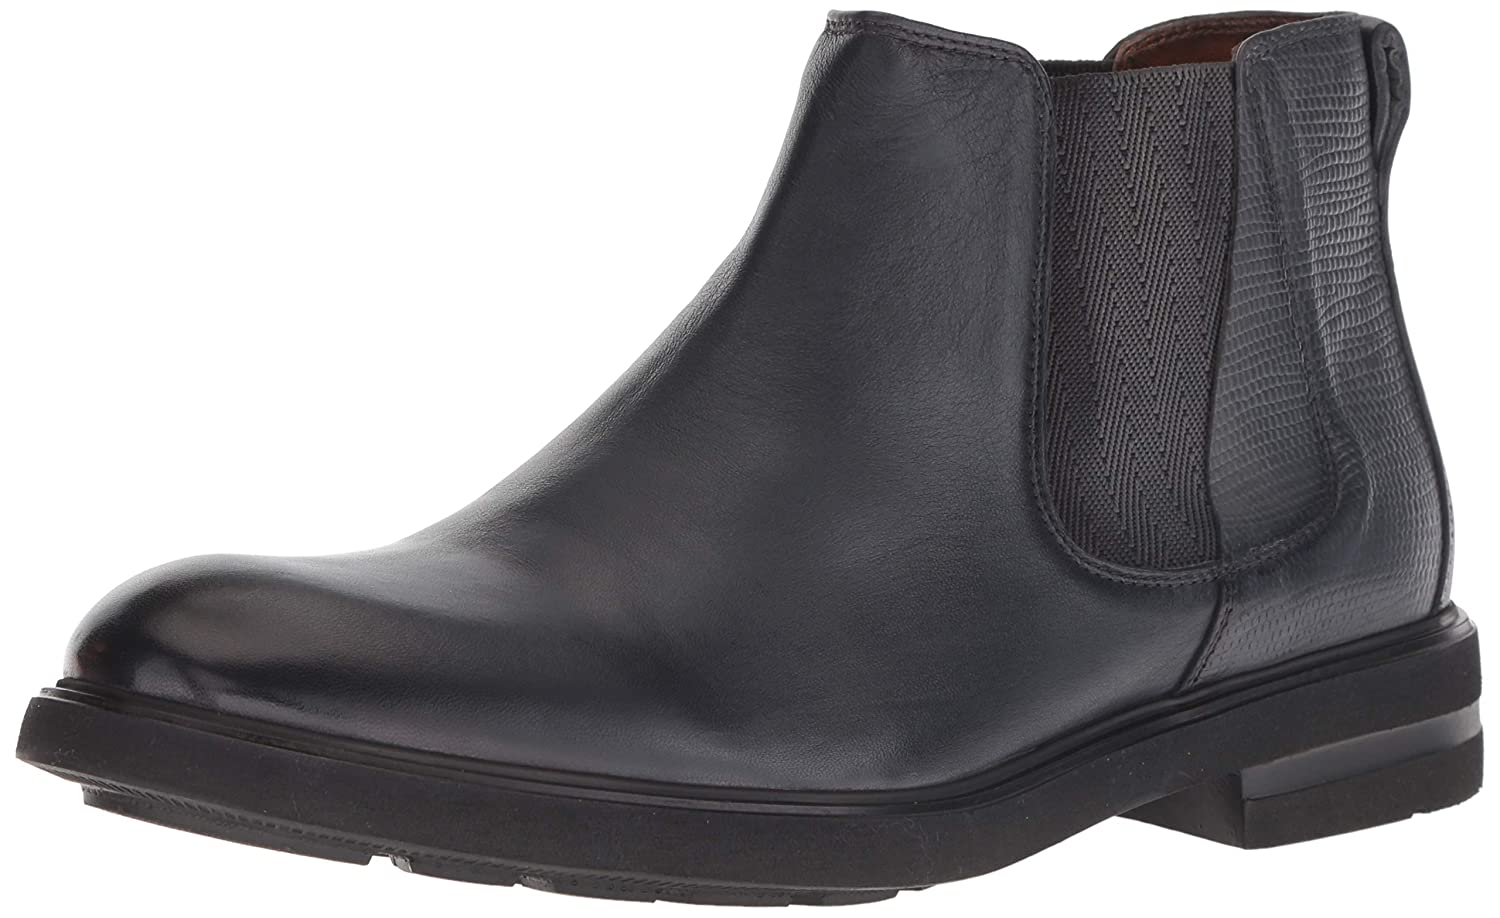 Kenneth Cole New YorkKMH8052LE - Tunnel Stiefel Hombre grau